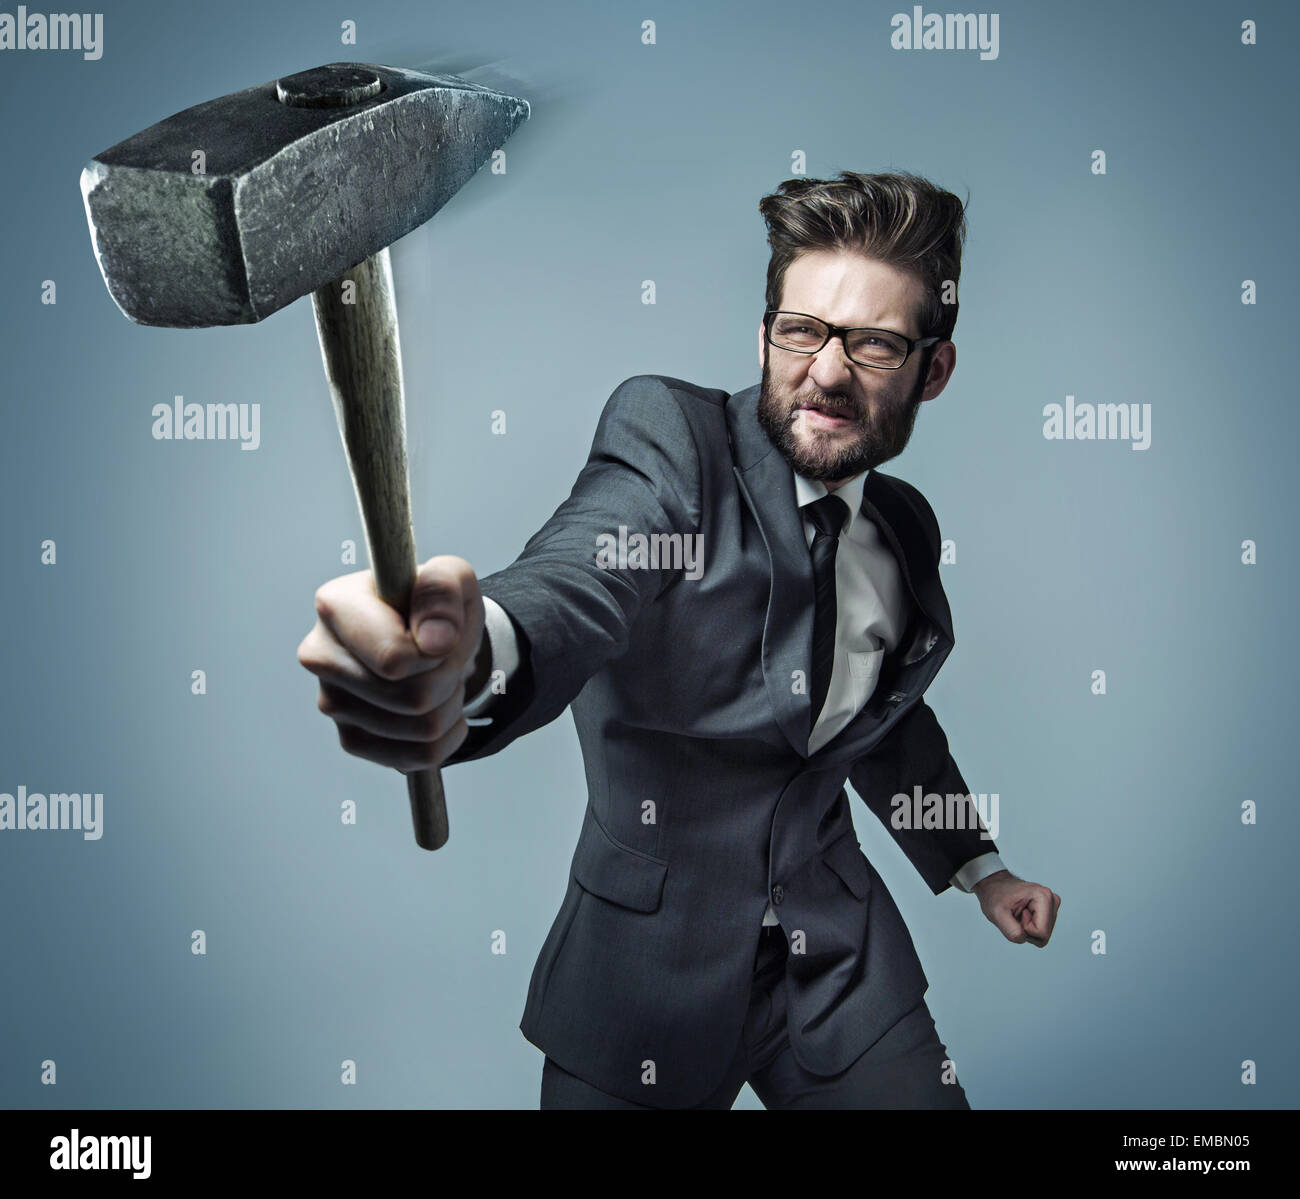 Conceptual picture of a powerful businessman - Stock Image